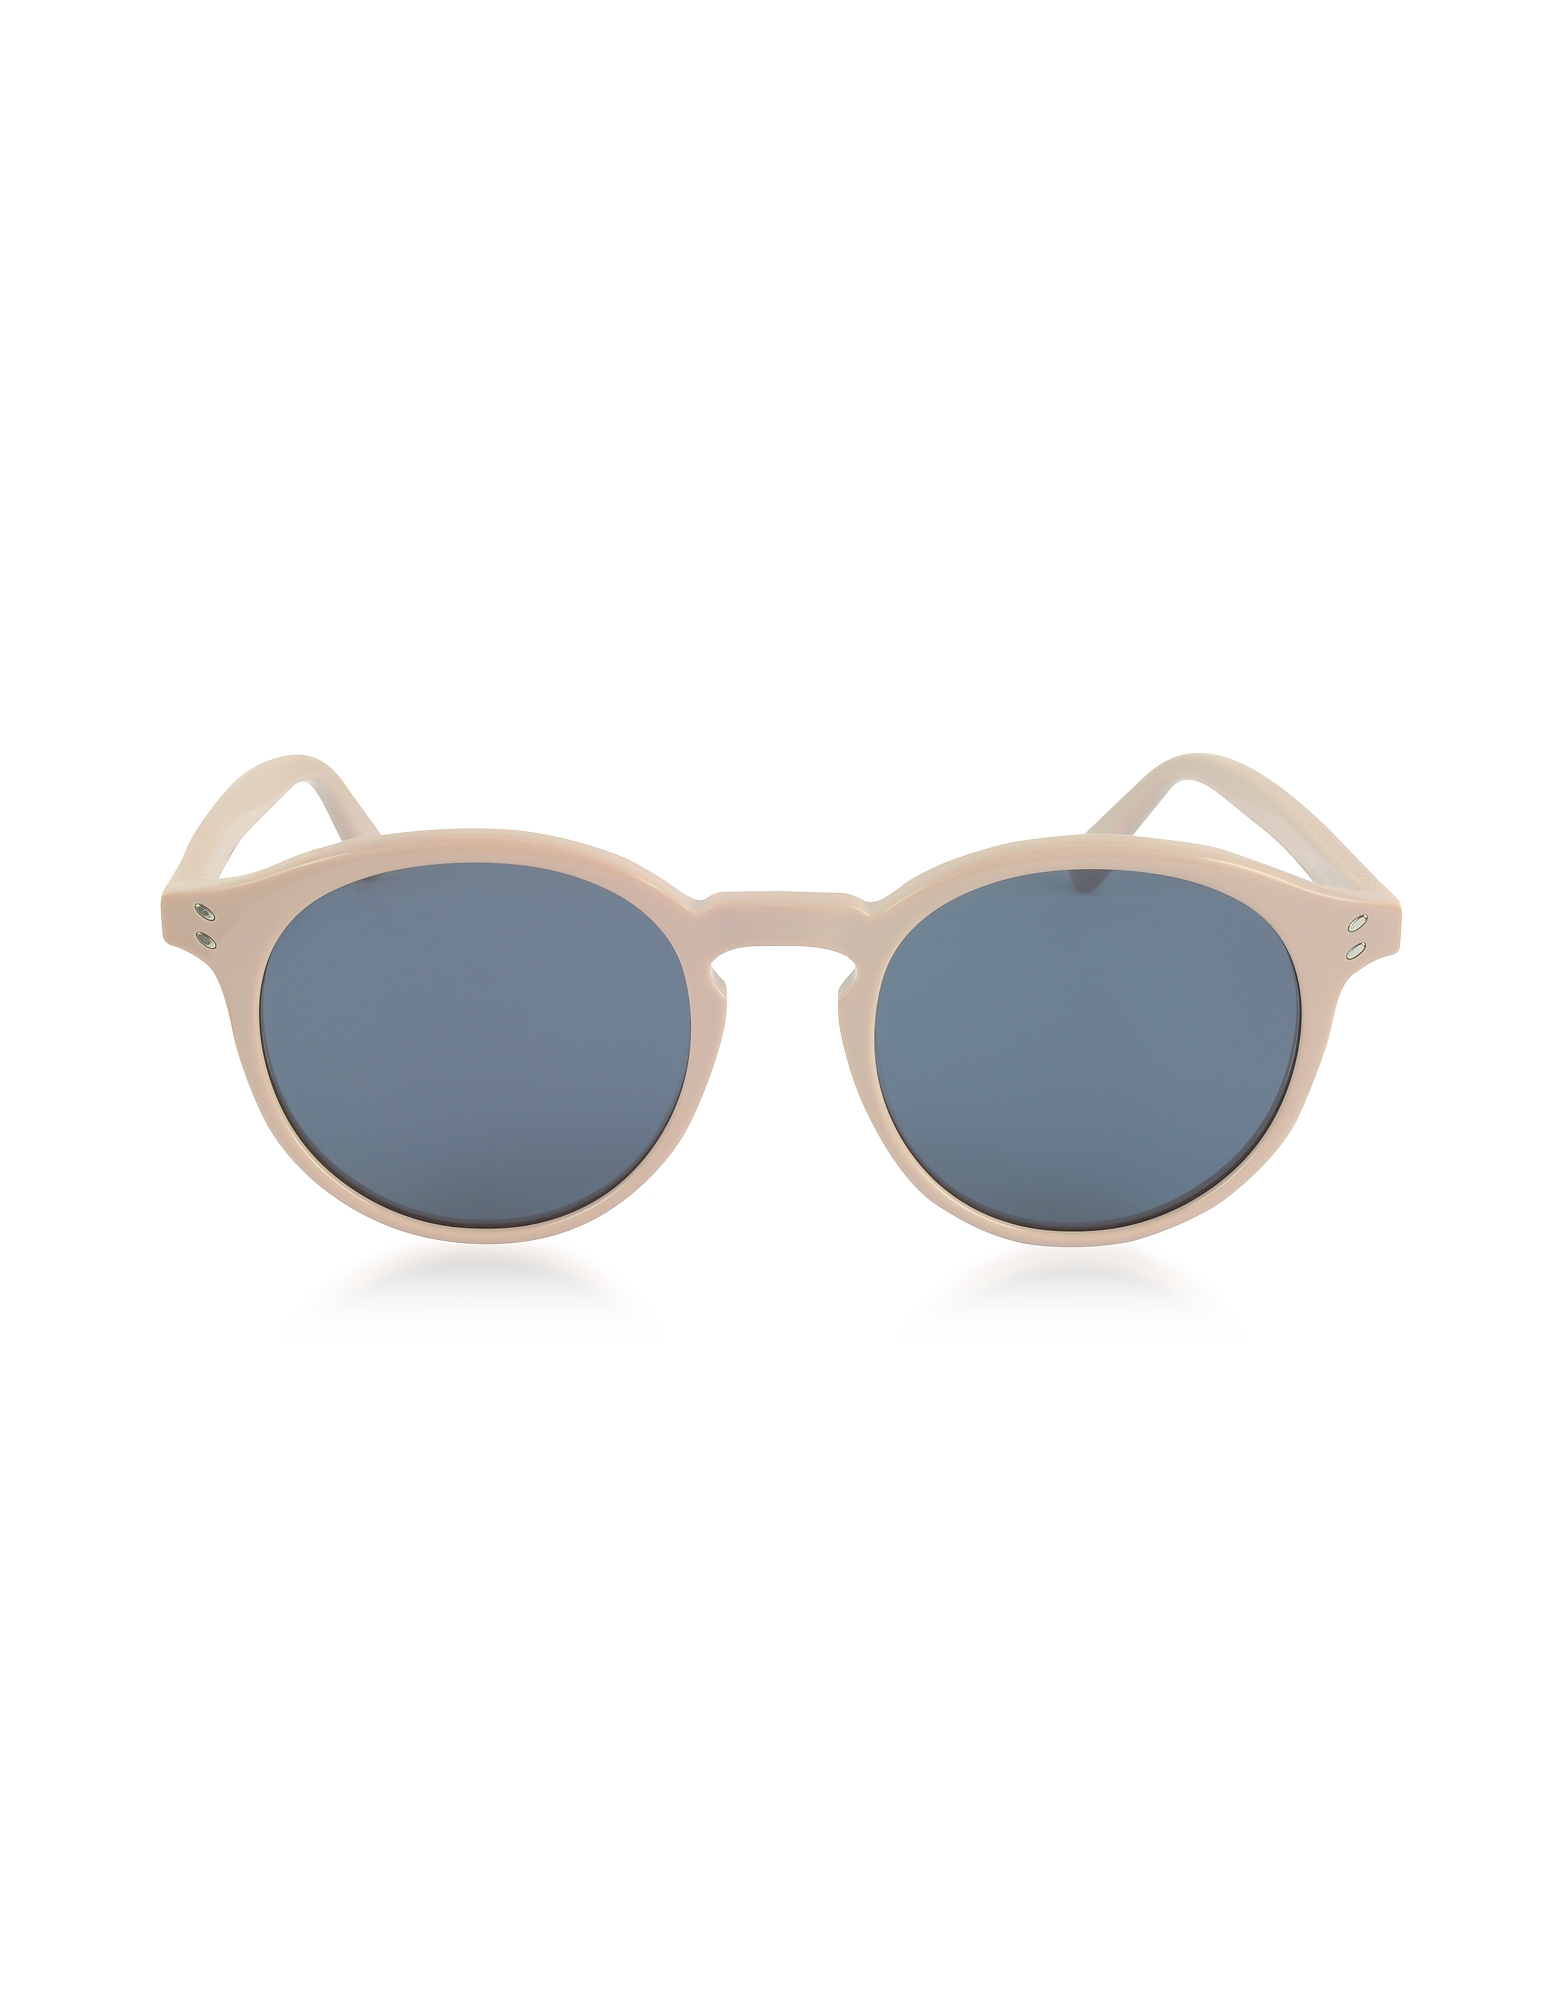 Stella McCartney Designer Sunglasses, SC0069S Round Acetate Men's Sunglasses